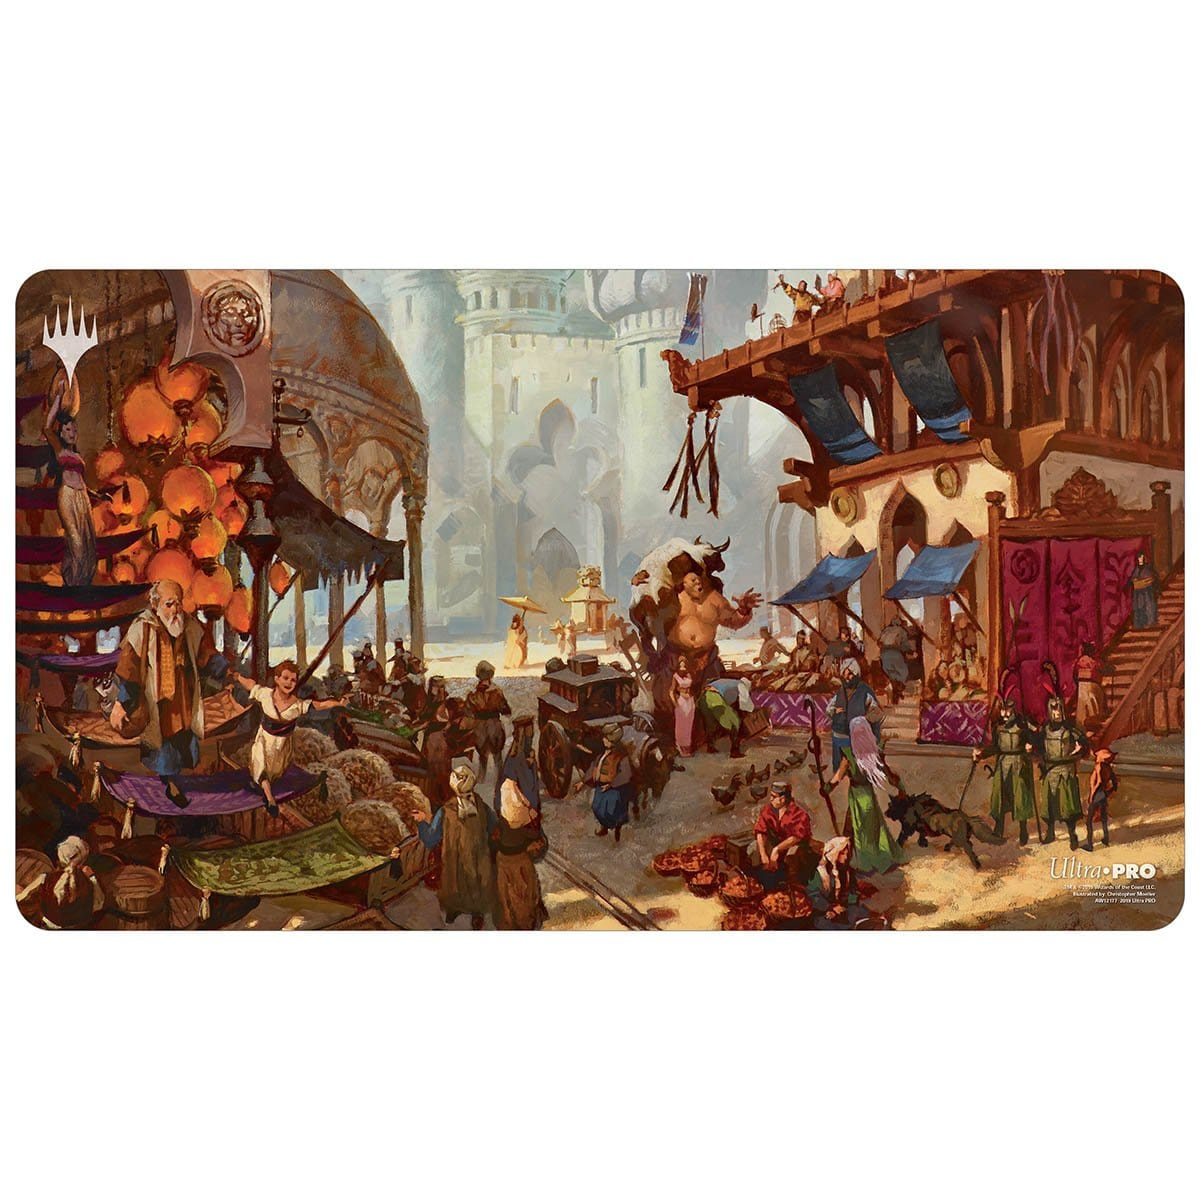 Bazaar of Baghdad Playmat - Playmat - Original Magic Art - Accessories for Magic the Gathering and other card games